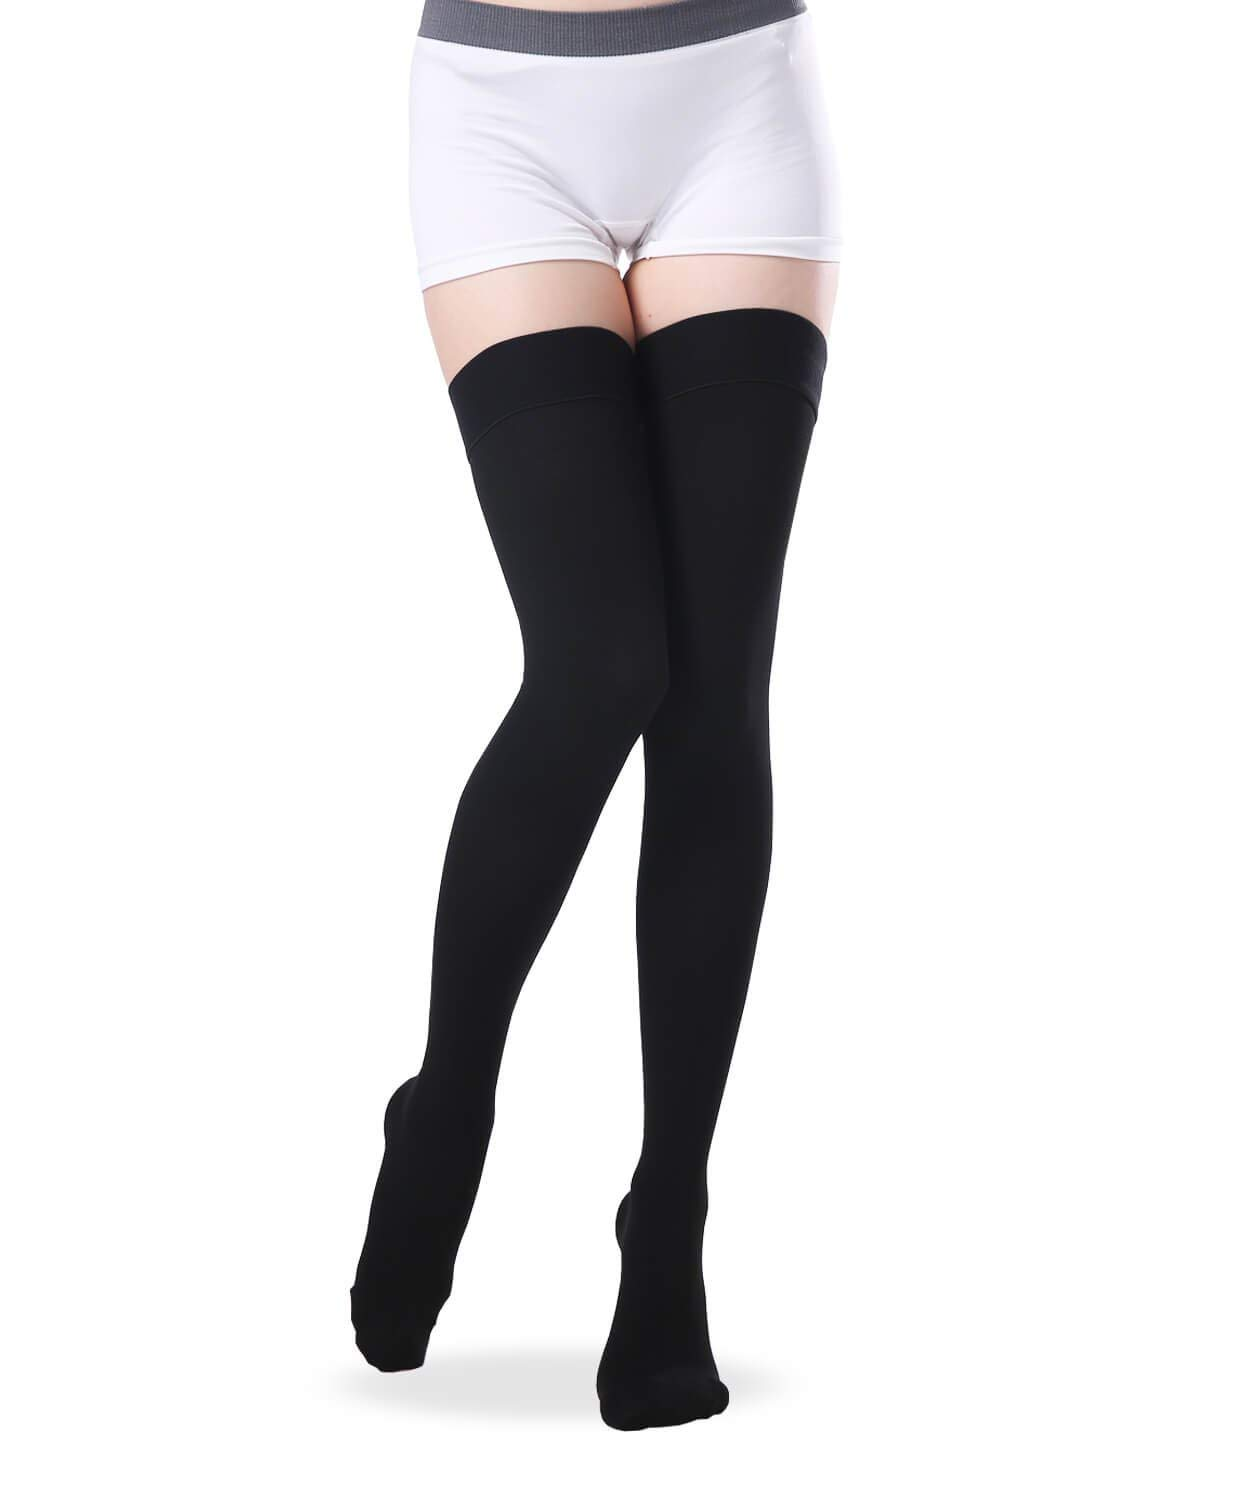 7b8dff873c1 Get Quotations · SWOLF Thigh High Closed Toe Compression Stockings